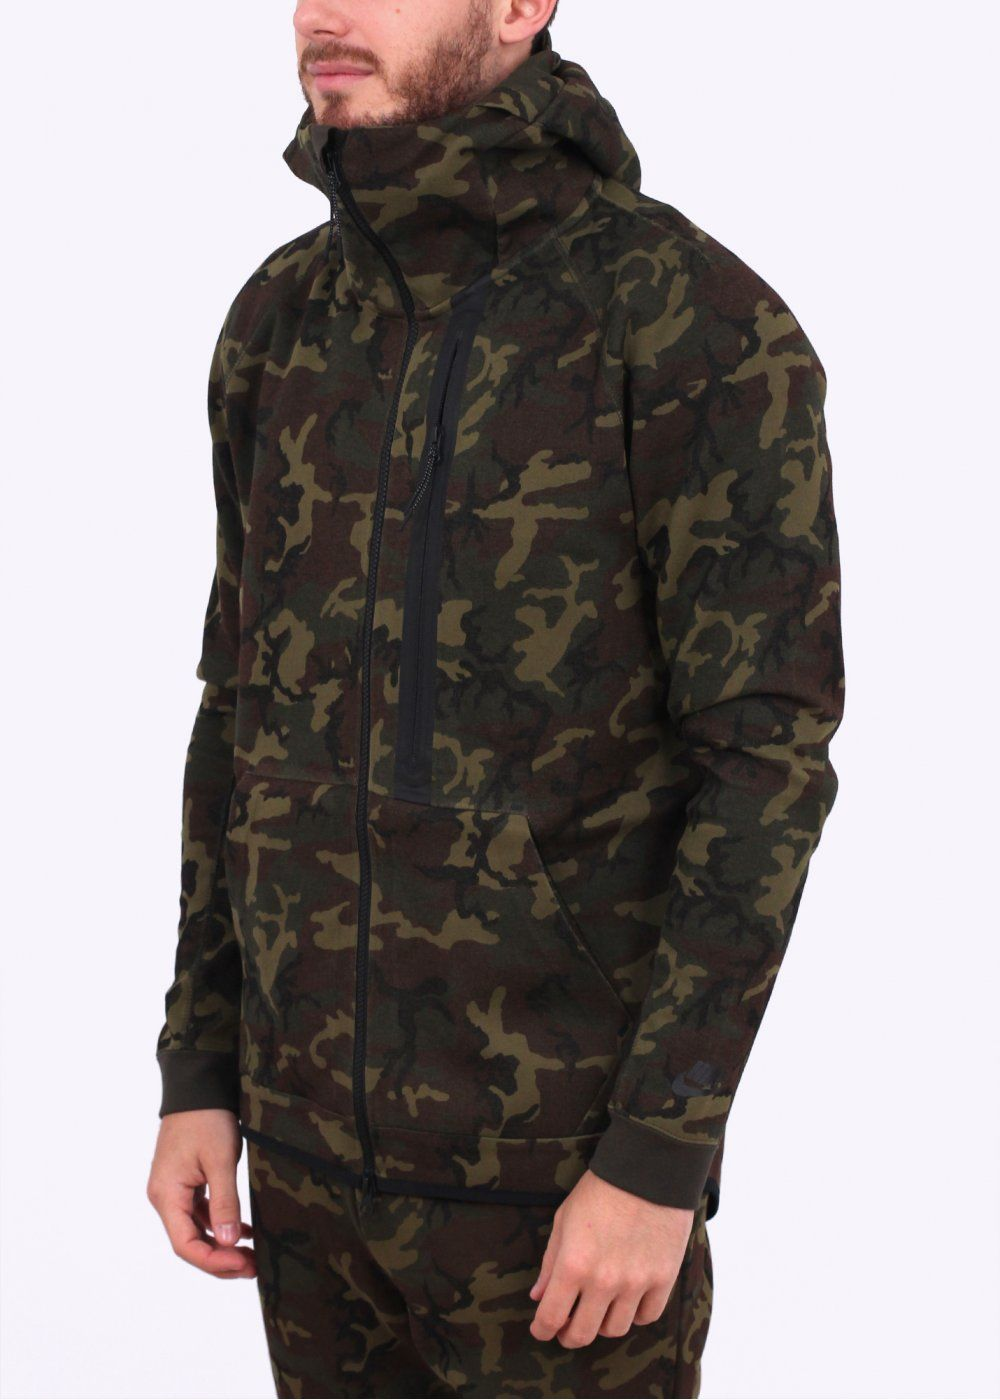 48f8eeb59939e Nike Apparel Tech Fleece Camo Hoody - Green | Nike tech fleece ...